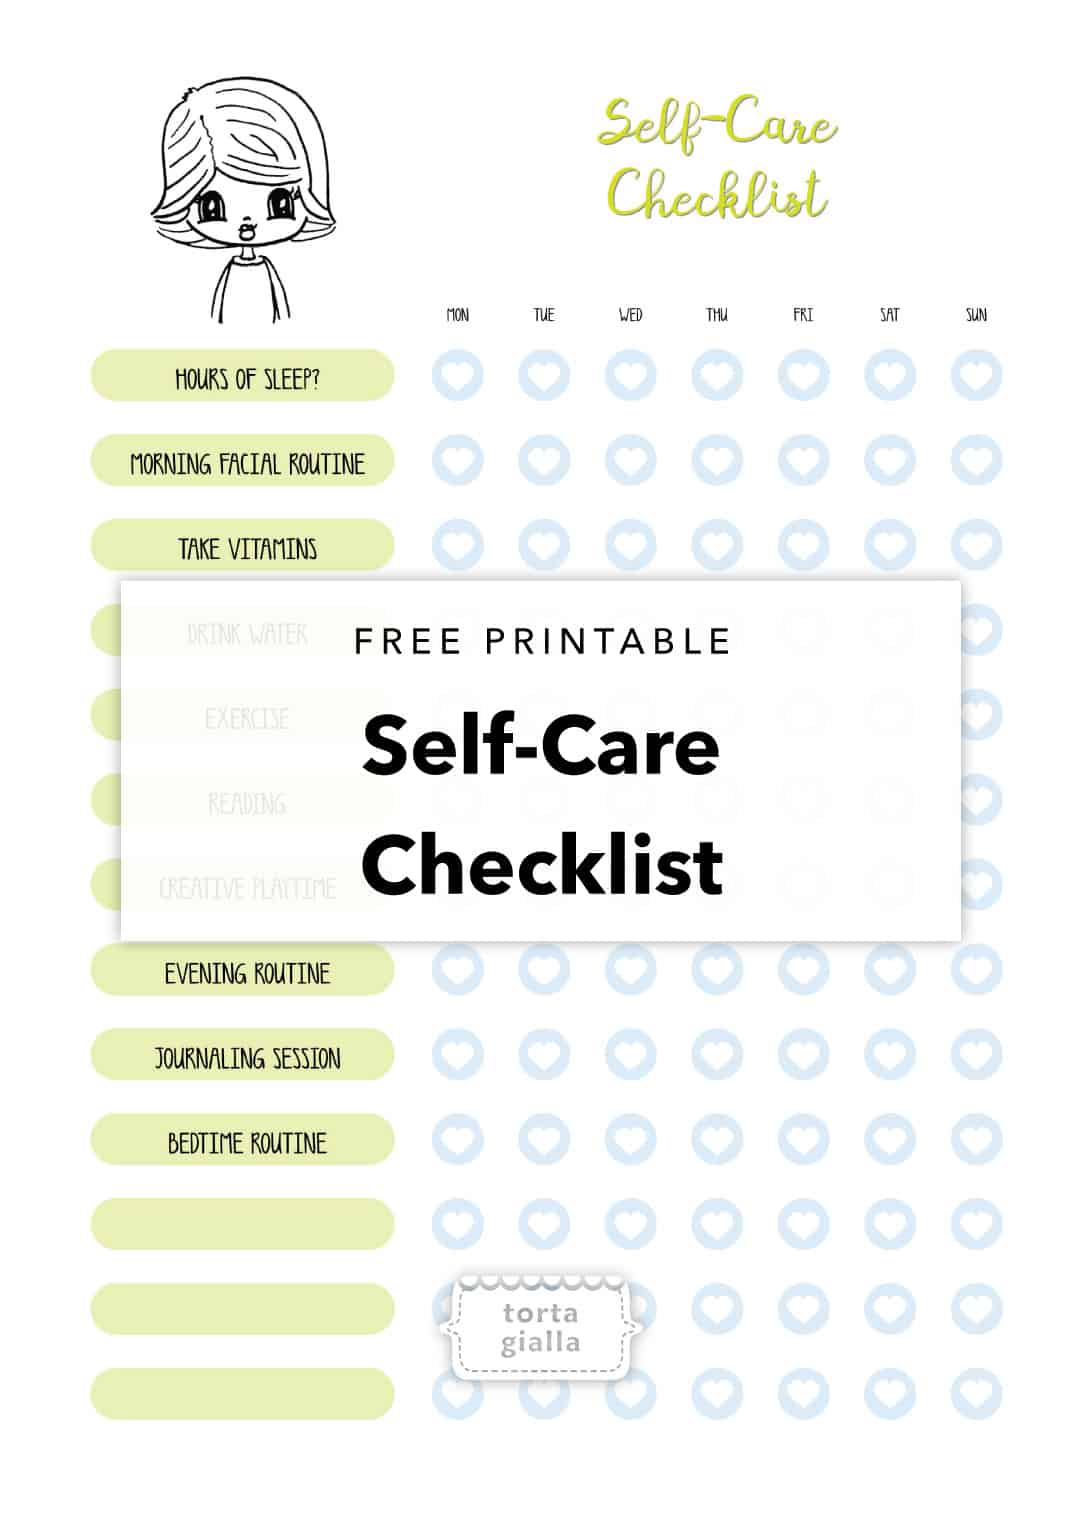 Self-Care Checklist Printable For FREE Download